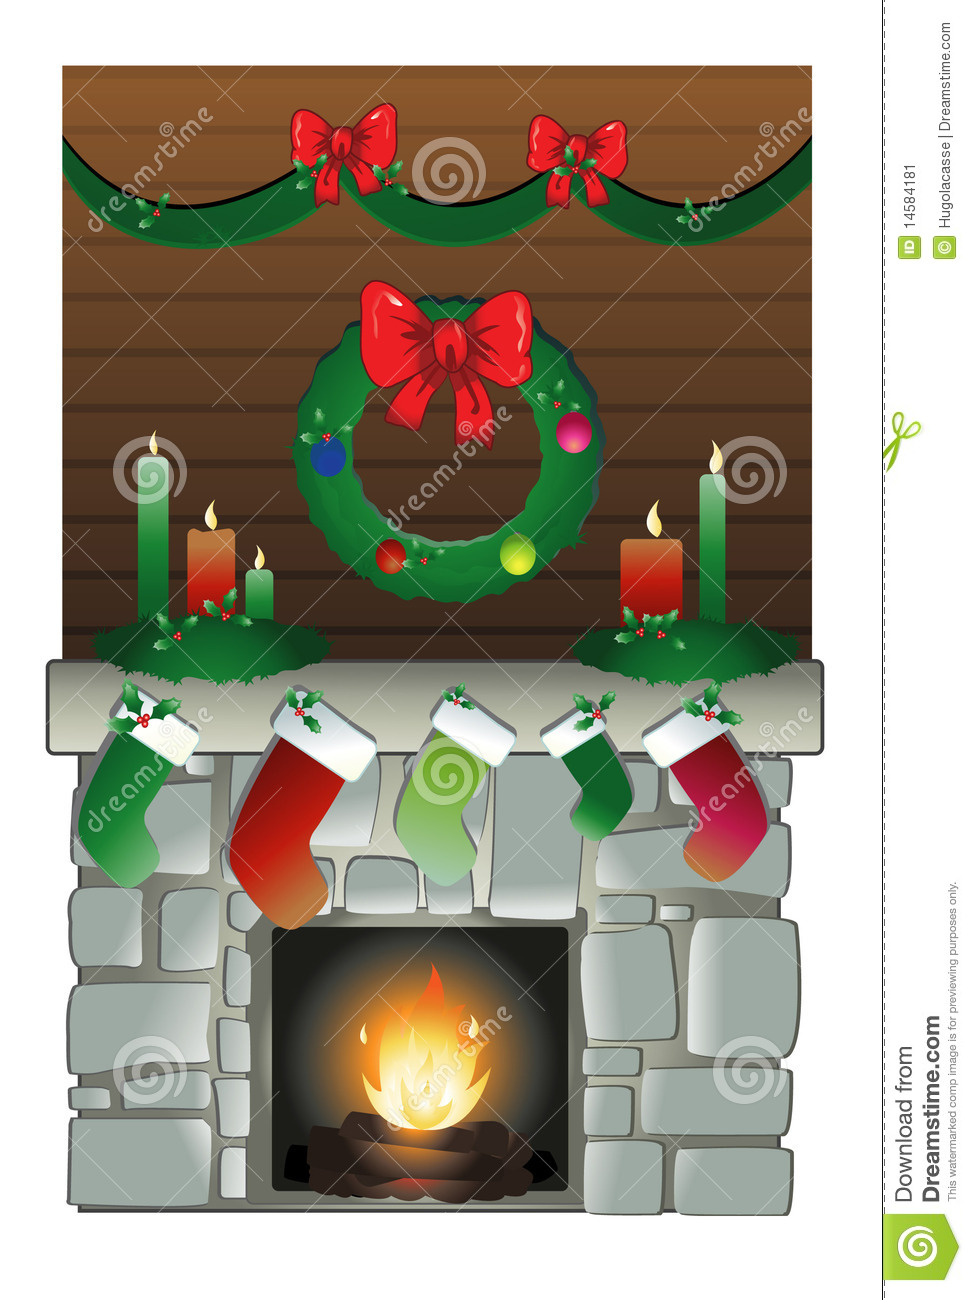 Christmas chimney stock vector. Image of green, vector ...